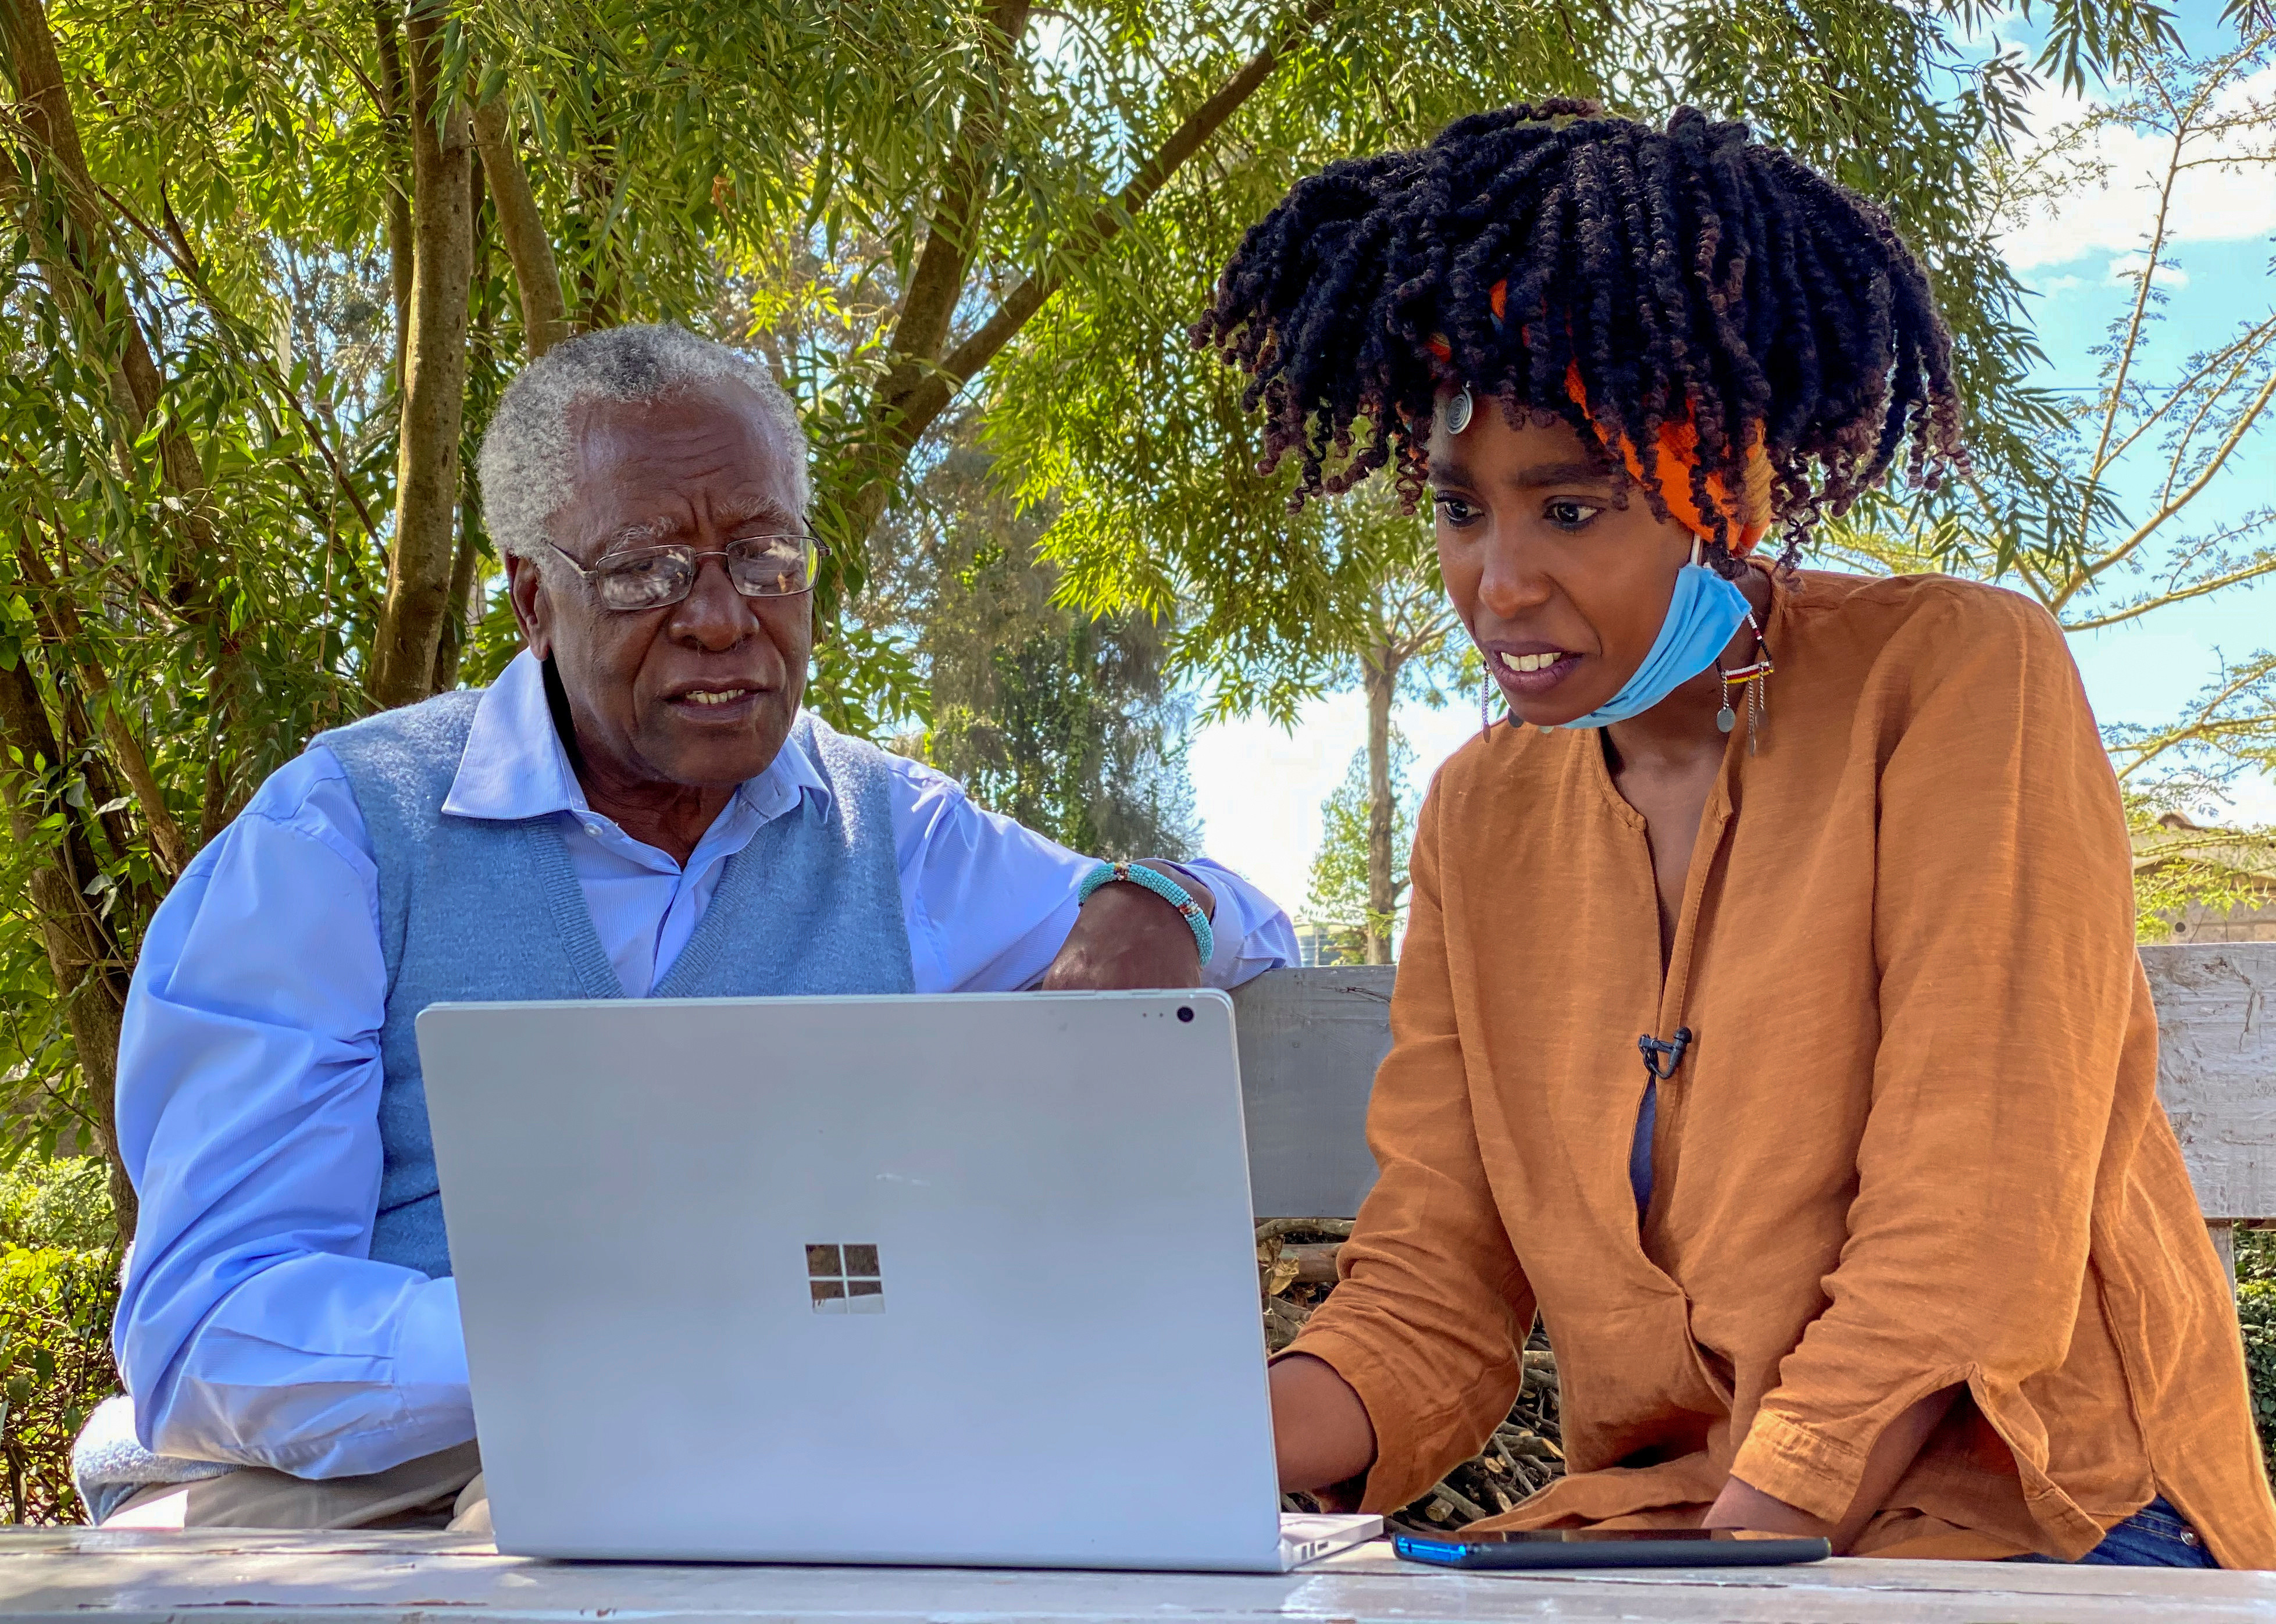 Chao Tayiana, a digital historian, and her grandfather Daniel Sindiyo, whose mother was in the British detention camps of the pre-independence Mau Mau rebellion, look at the reconstructed 3D models of the detention camps, during a Reuters interview in Ngong, outside Nairobi, Kenya June 29, 2020. Picture taken June 29, 2020. REUTERS/Edwin Waita - RC2OPH95W4WR